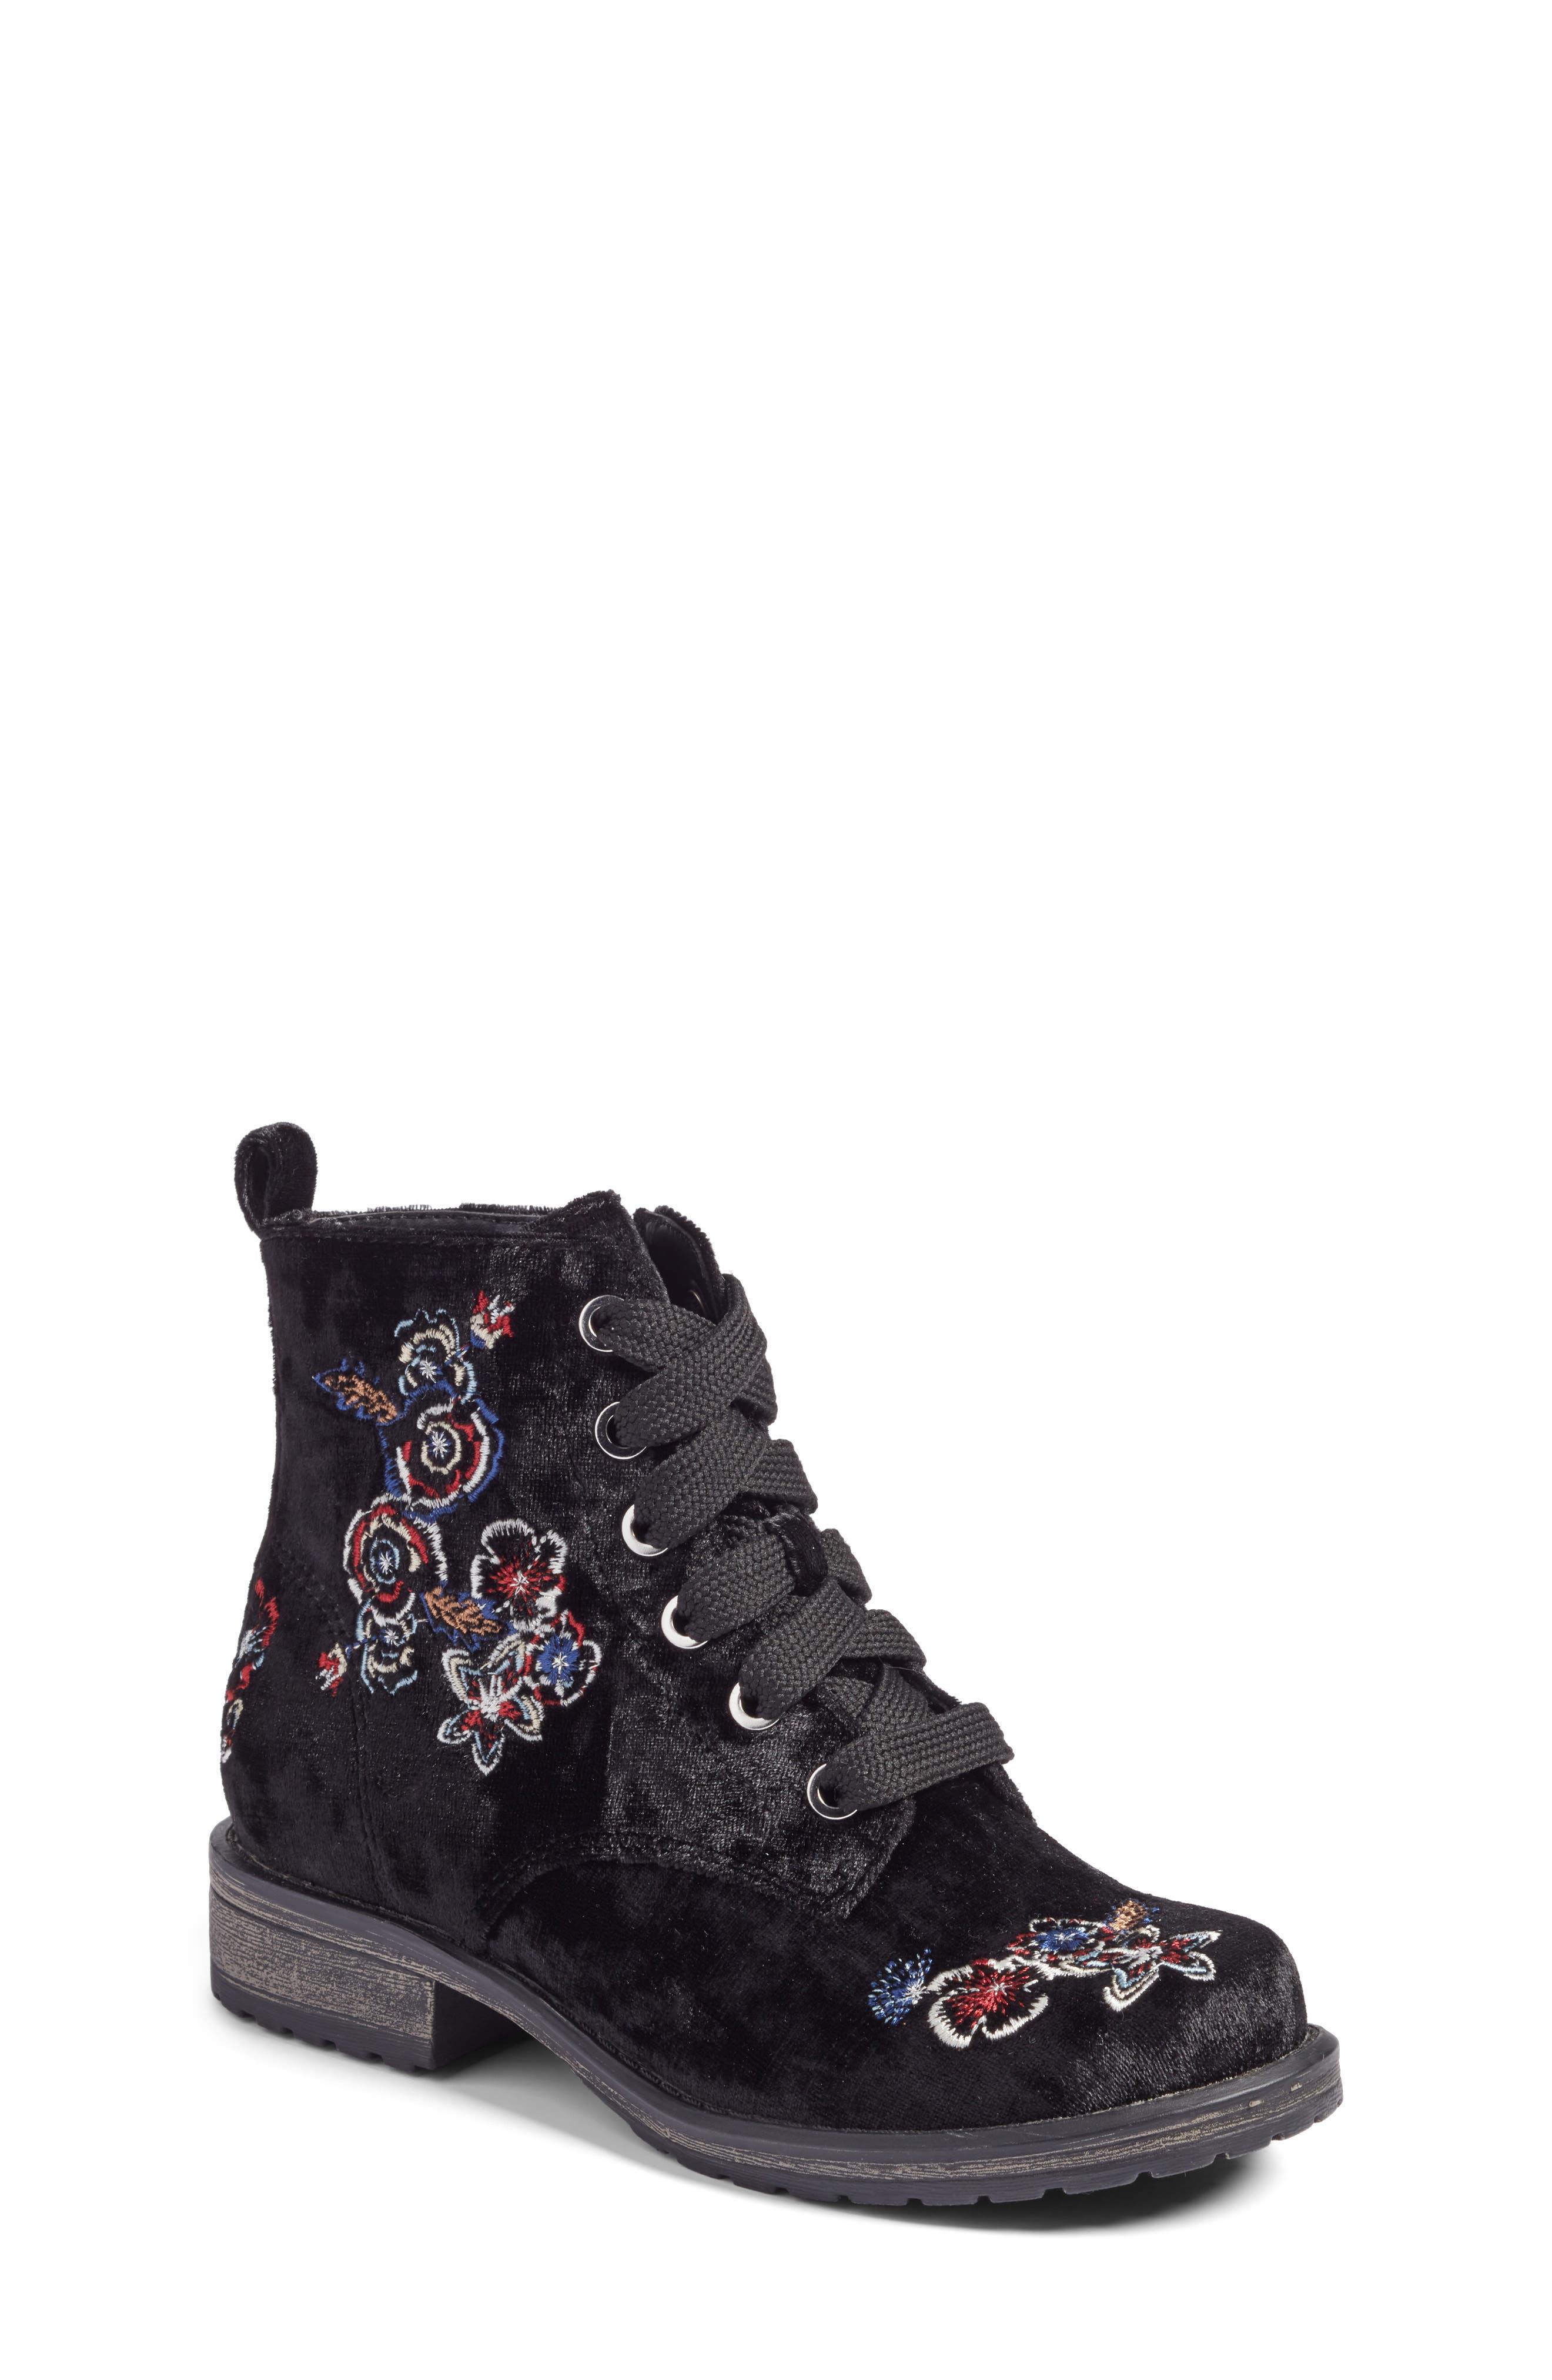 Alternate Image 1 Selected - Dolce Vita Lilla Combat Boot (Toddler, Little Kid & Big Kid)